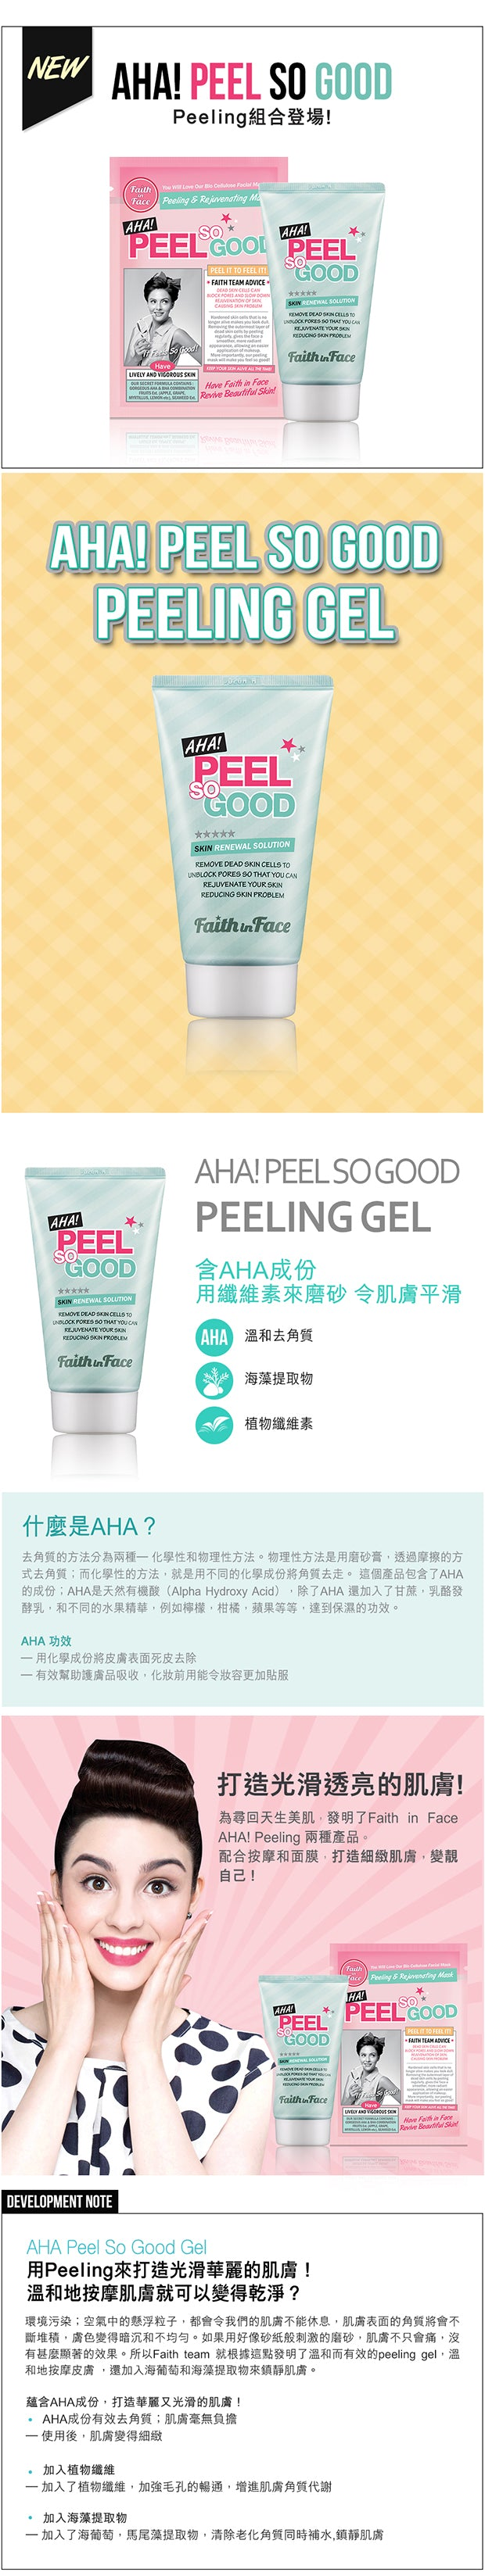 Faith in Face AHA! Peel So Good Gel 深層亮白去角質凝膠